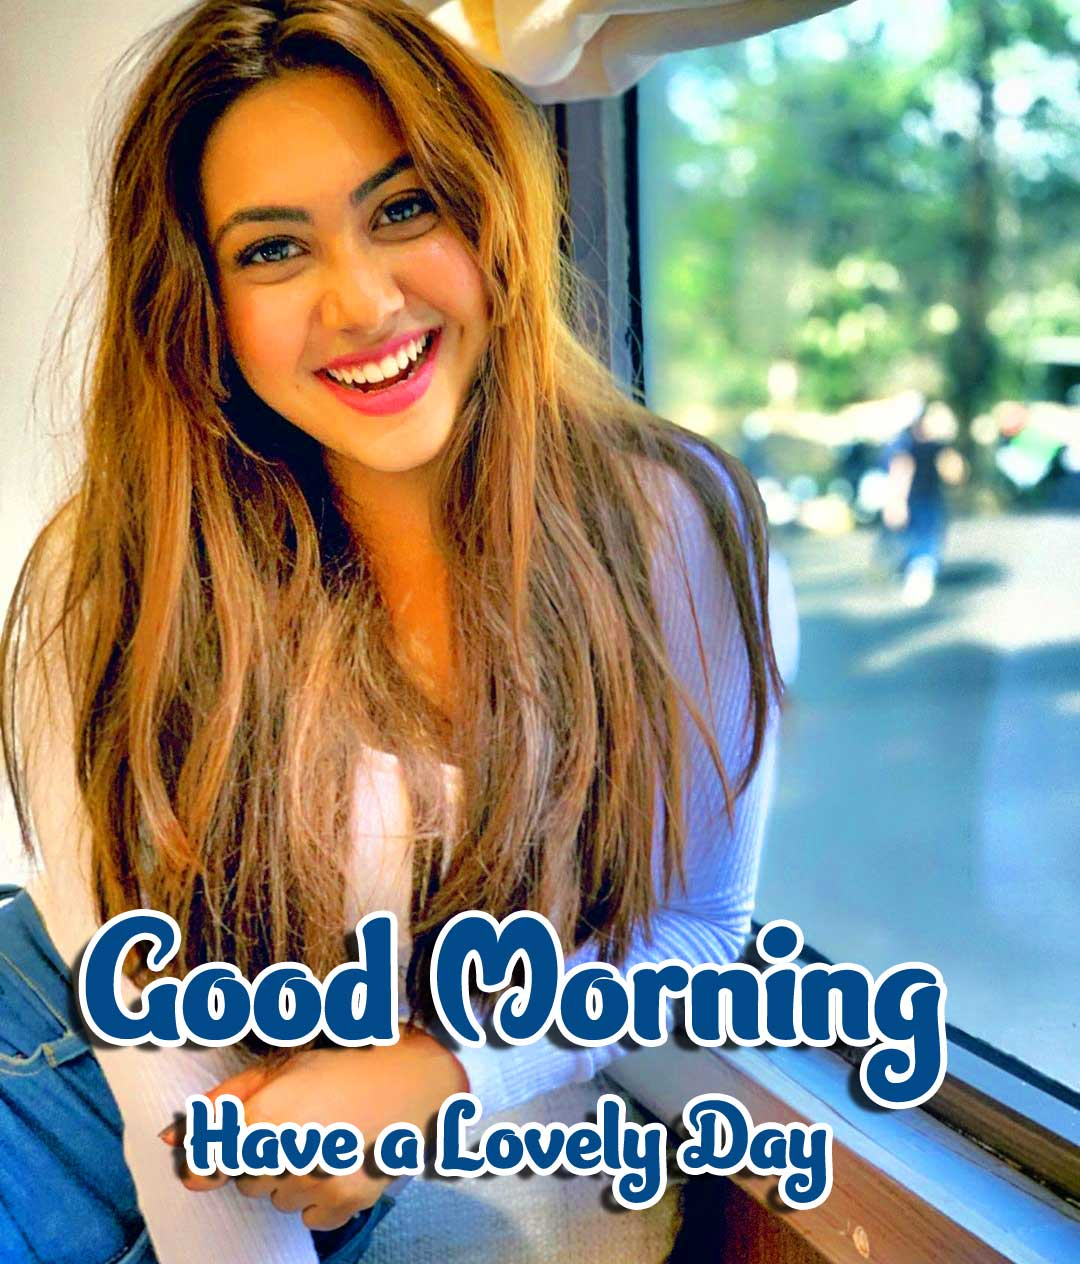 Best Latest Good Morning Images Pics Wallpaper for Facebook